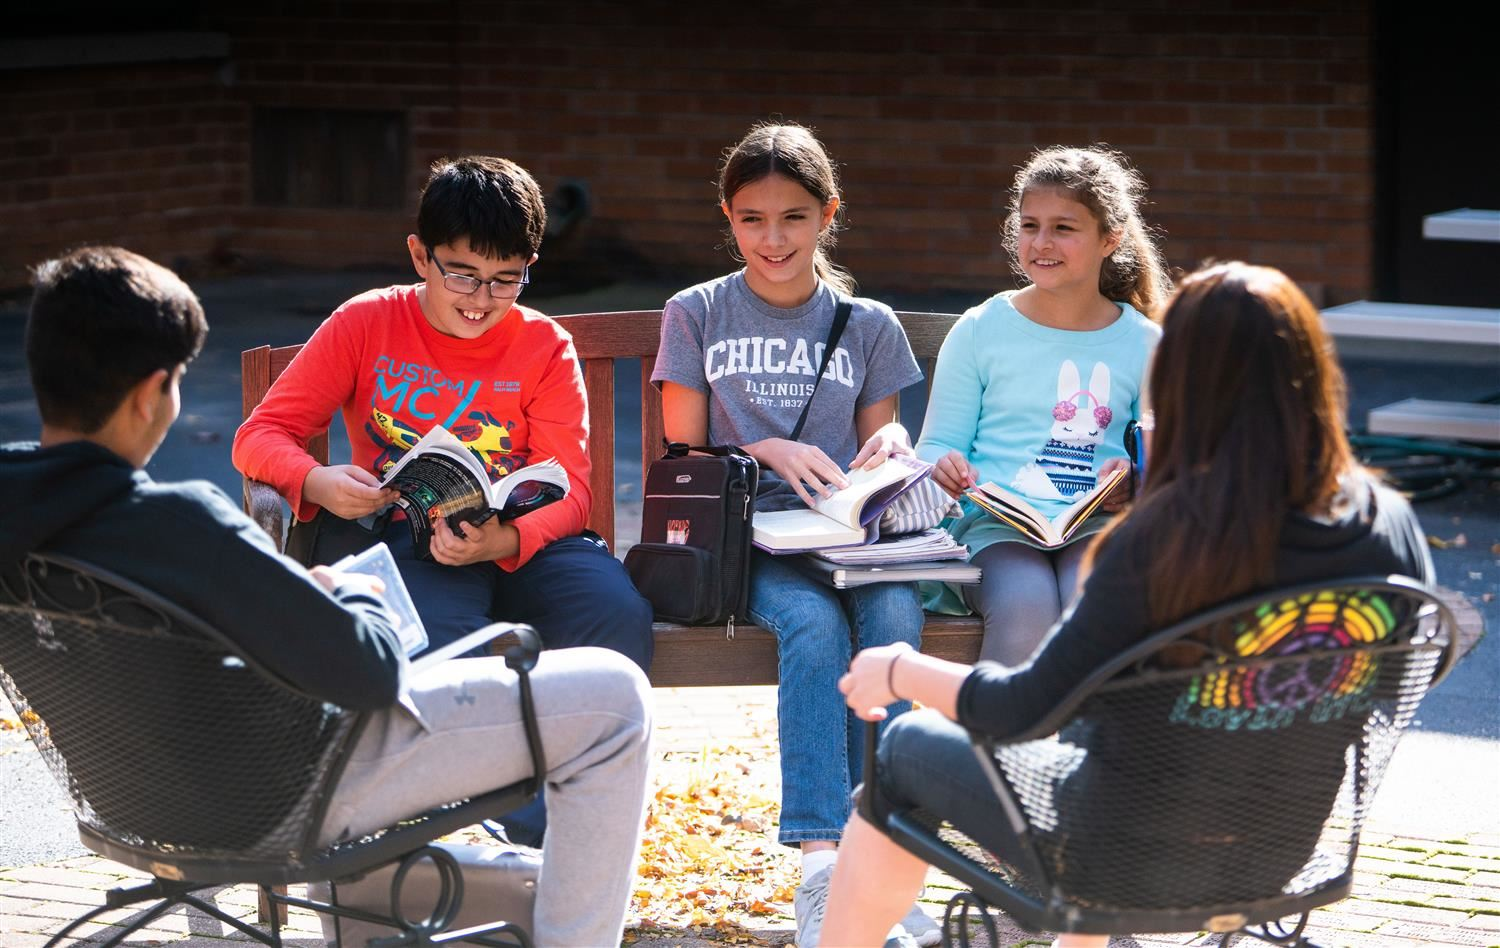 Students reading books outside